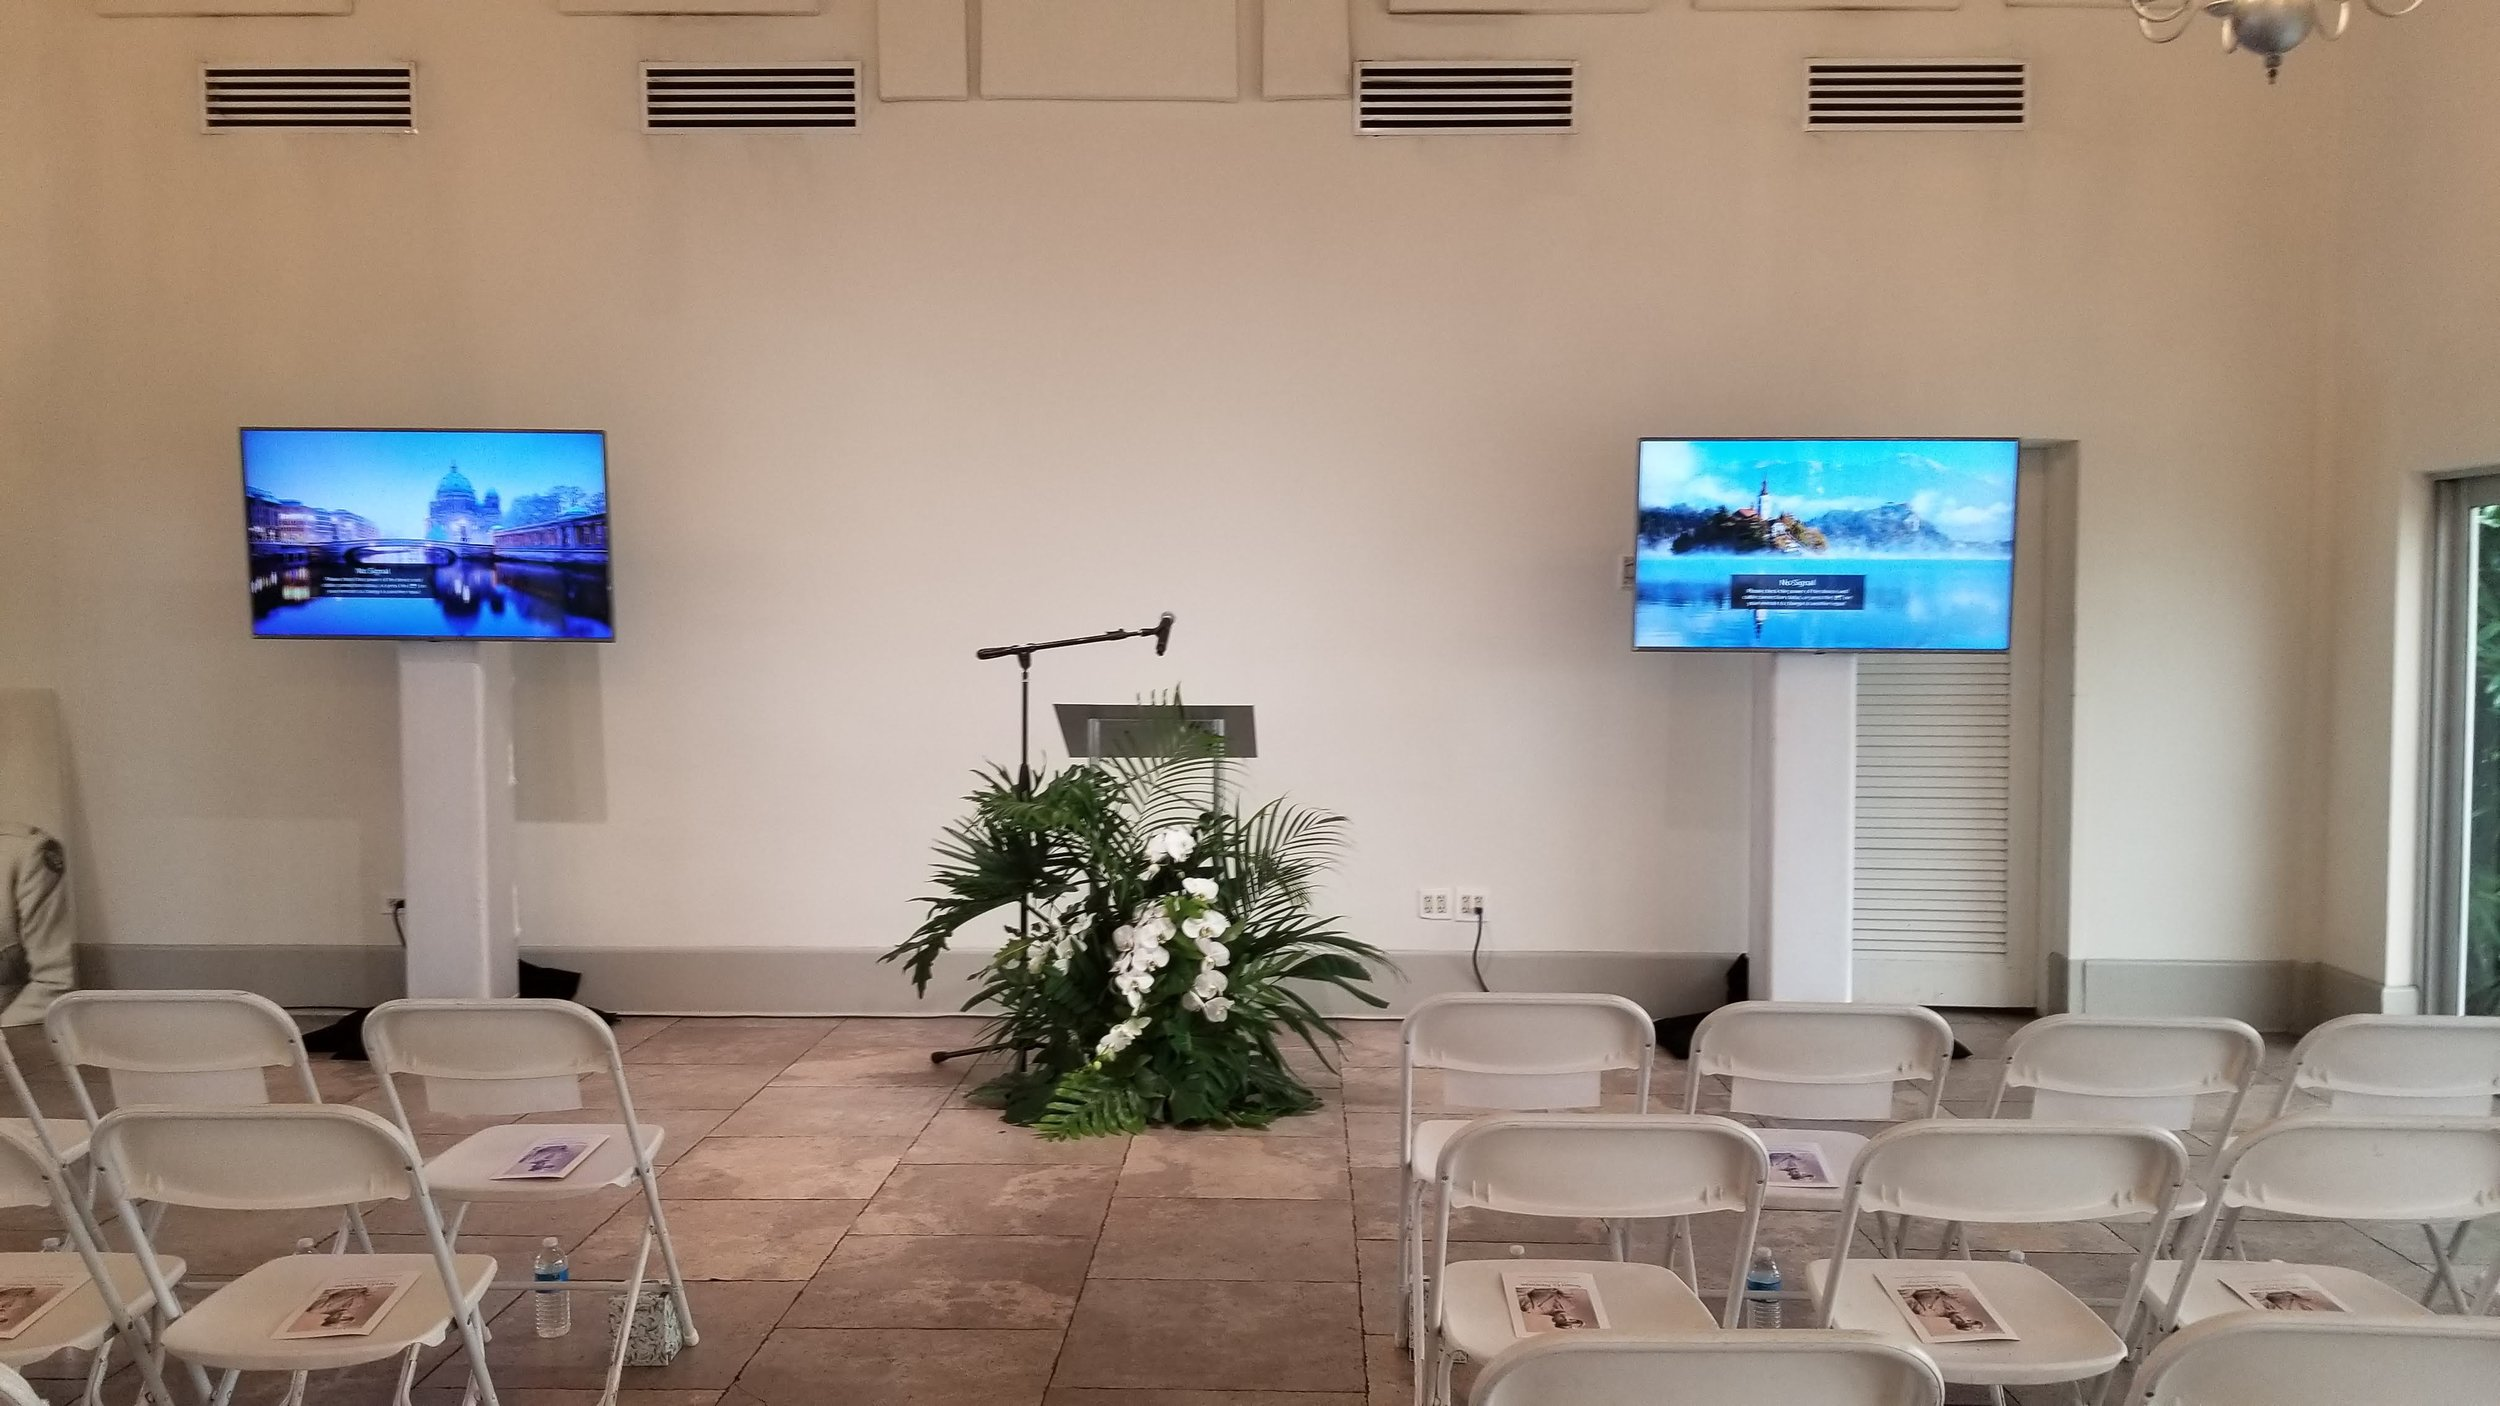 TV Display for Funeral Montage